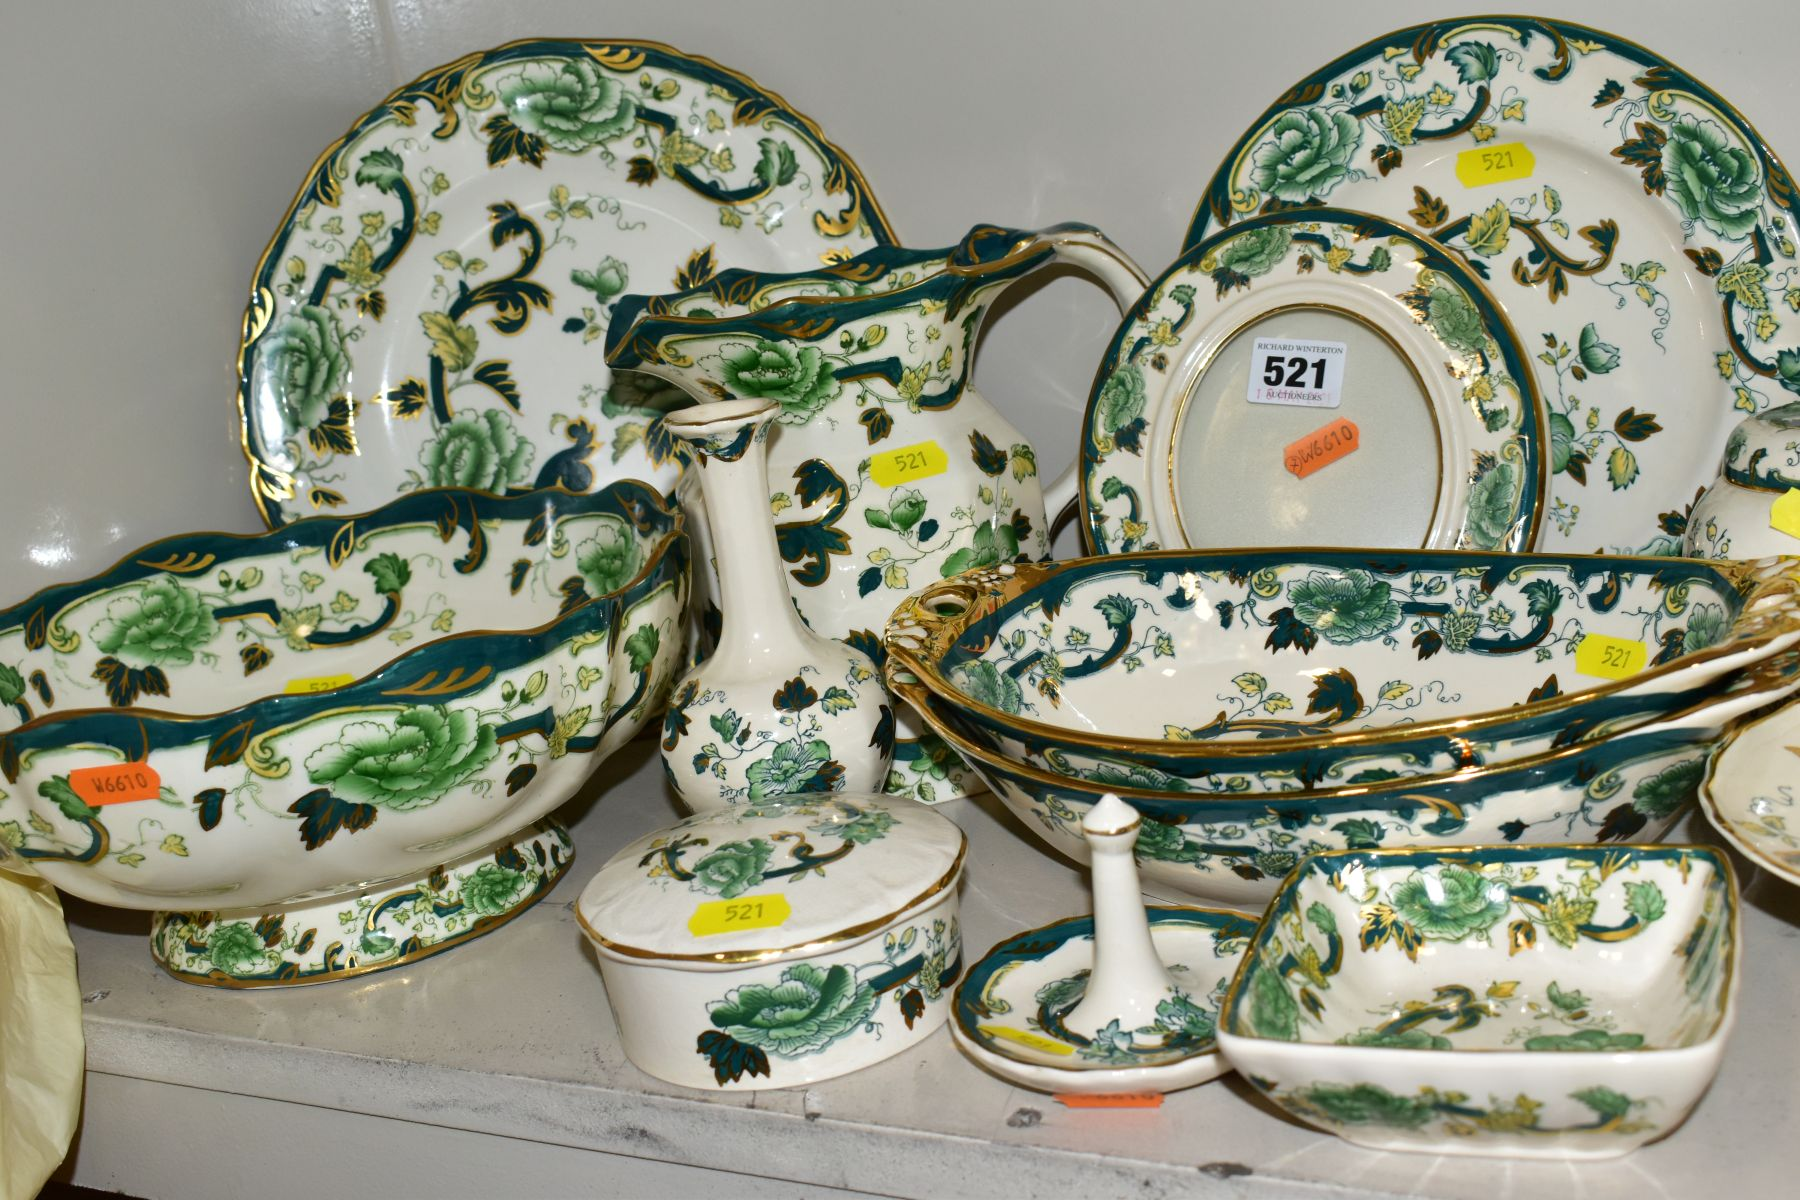 A COLLECTION OF MASONS IRONSTONE 'CHARTREUSE' PATTERN PLATES, JUGS, BOWLS, GINGER JARS, etc, - Image 7 of 7